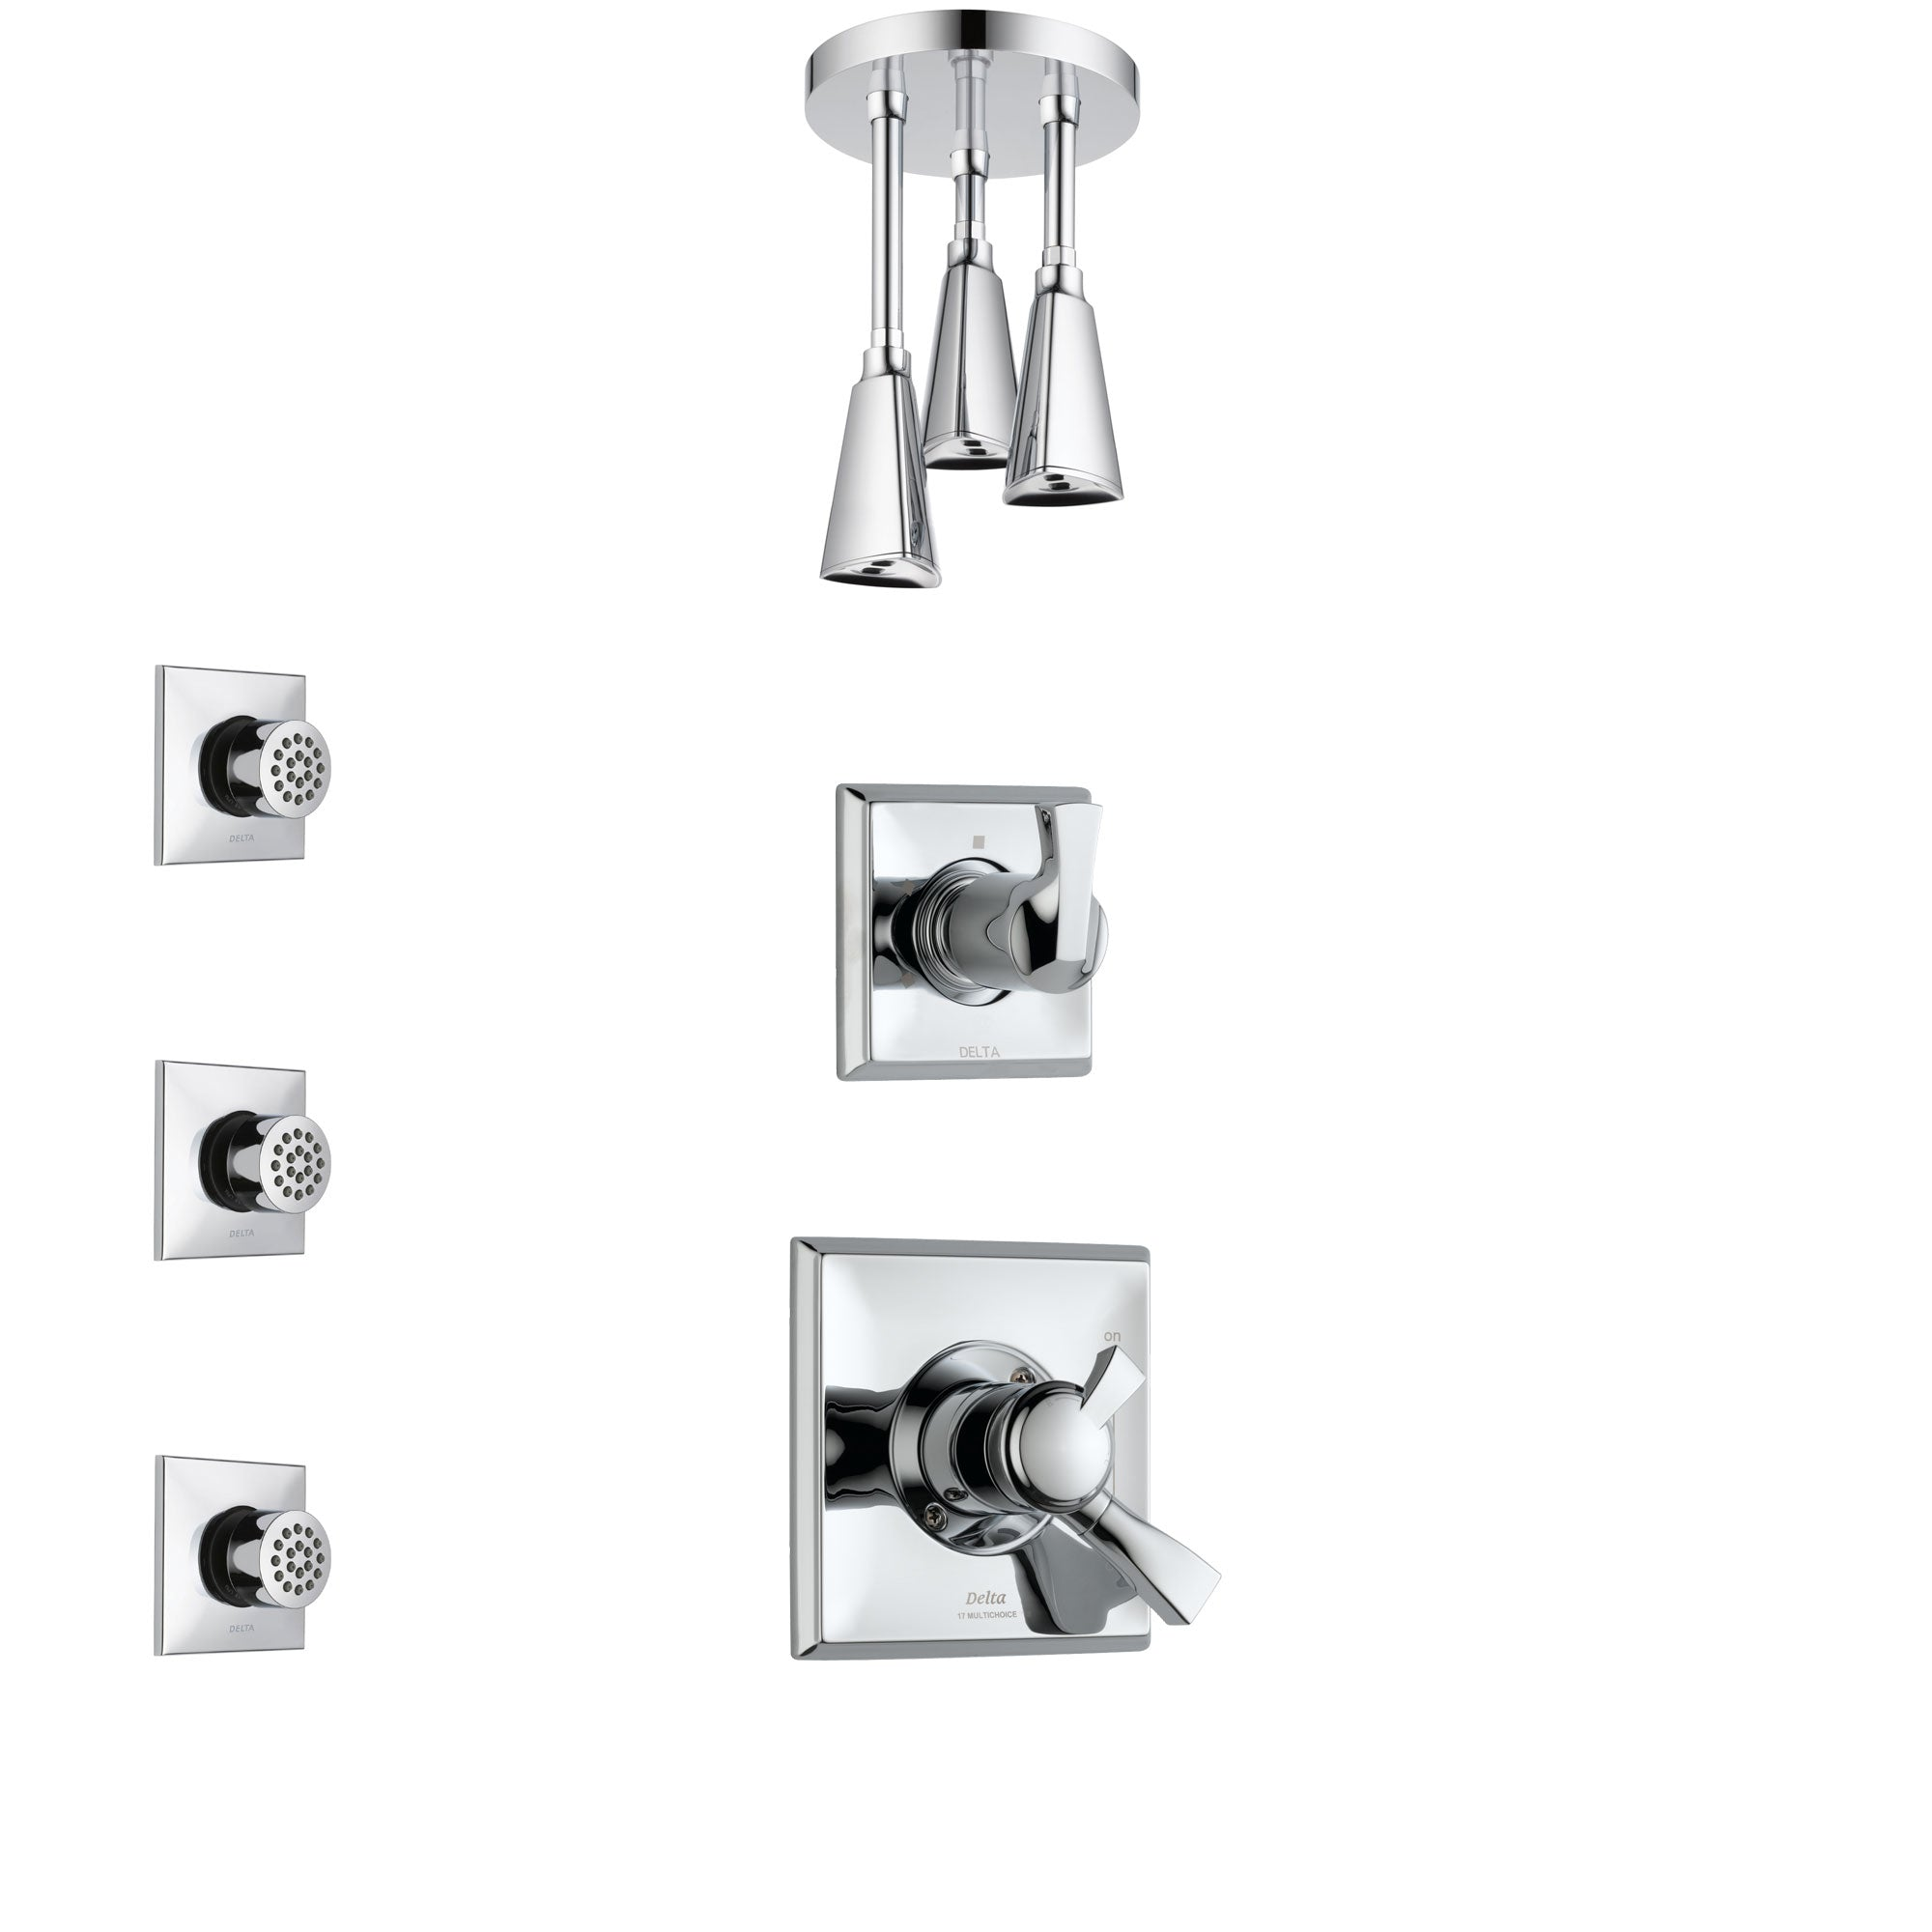 Delta Dryden Chrome Finish Shower System with Dual Control Handle, 3-Setting Diverter, Ceiling Mount Showerhead, and 3 Body Sprays SS17513